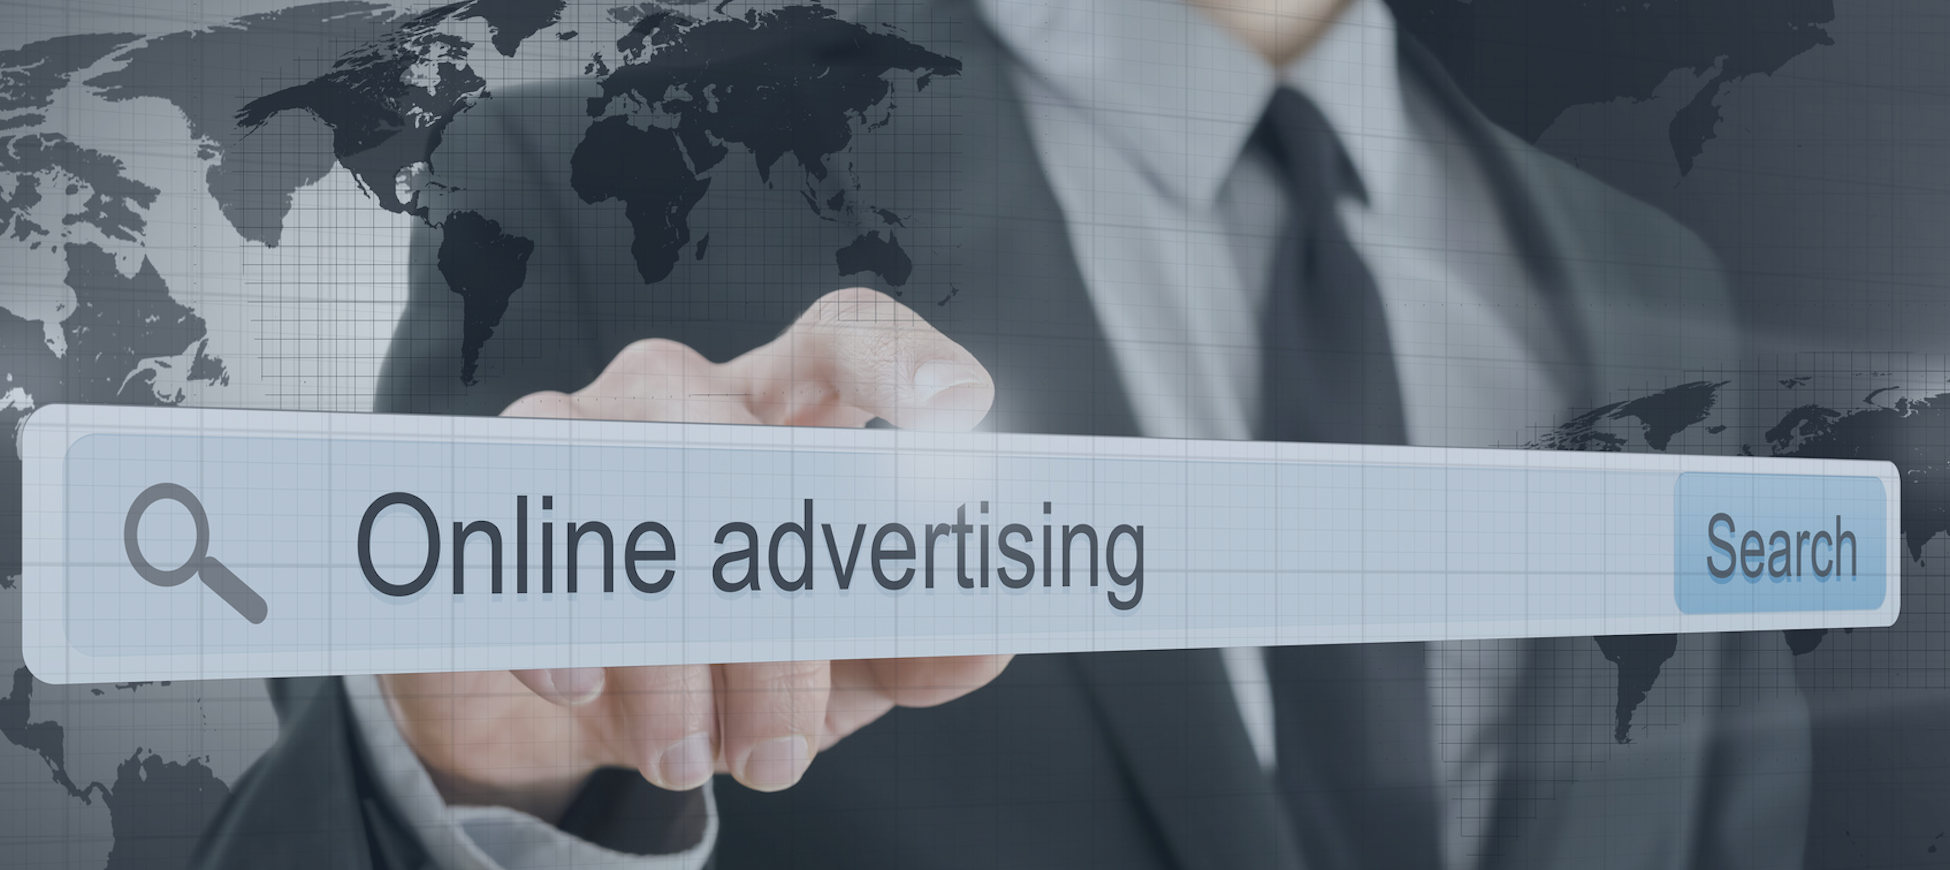 Advertise your products and services online at Bing, Facebook, and Google using Internet Advertising.